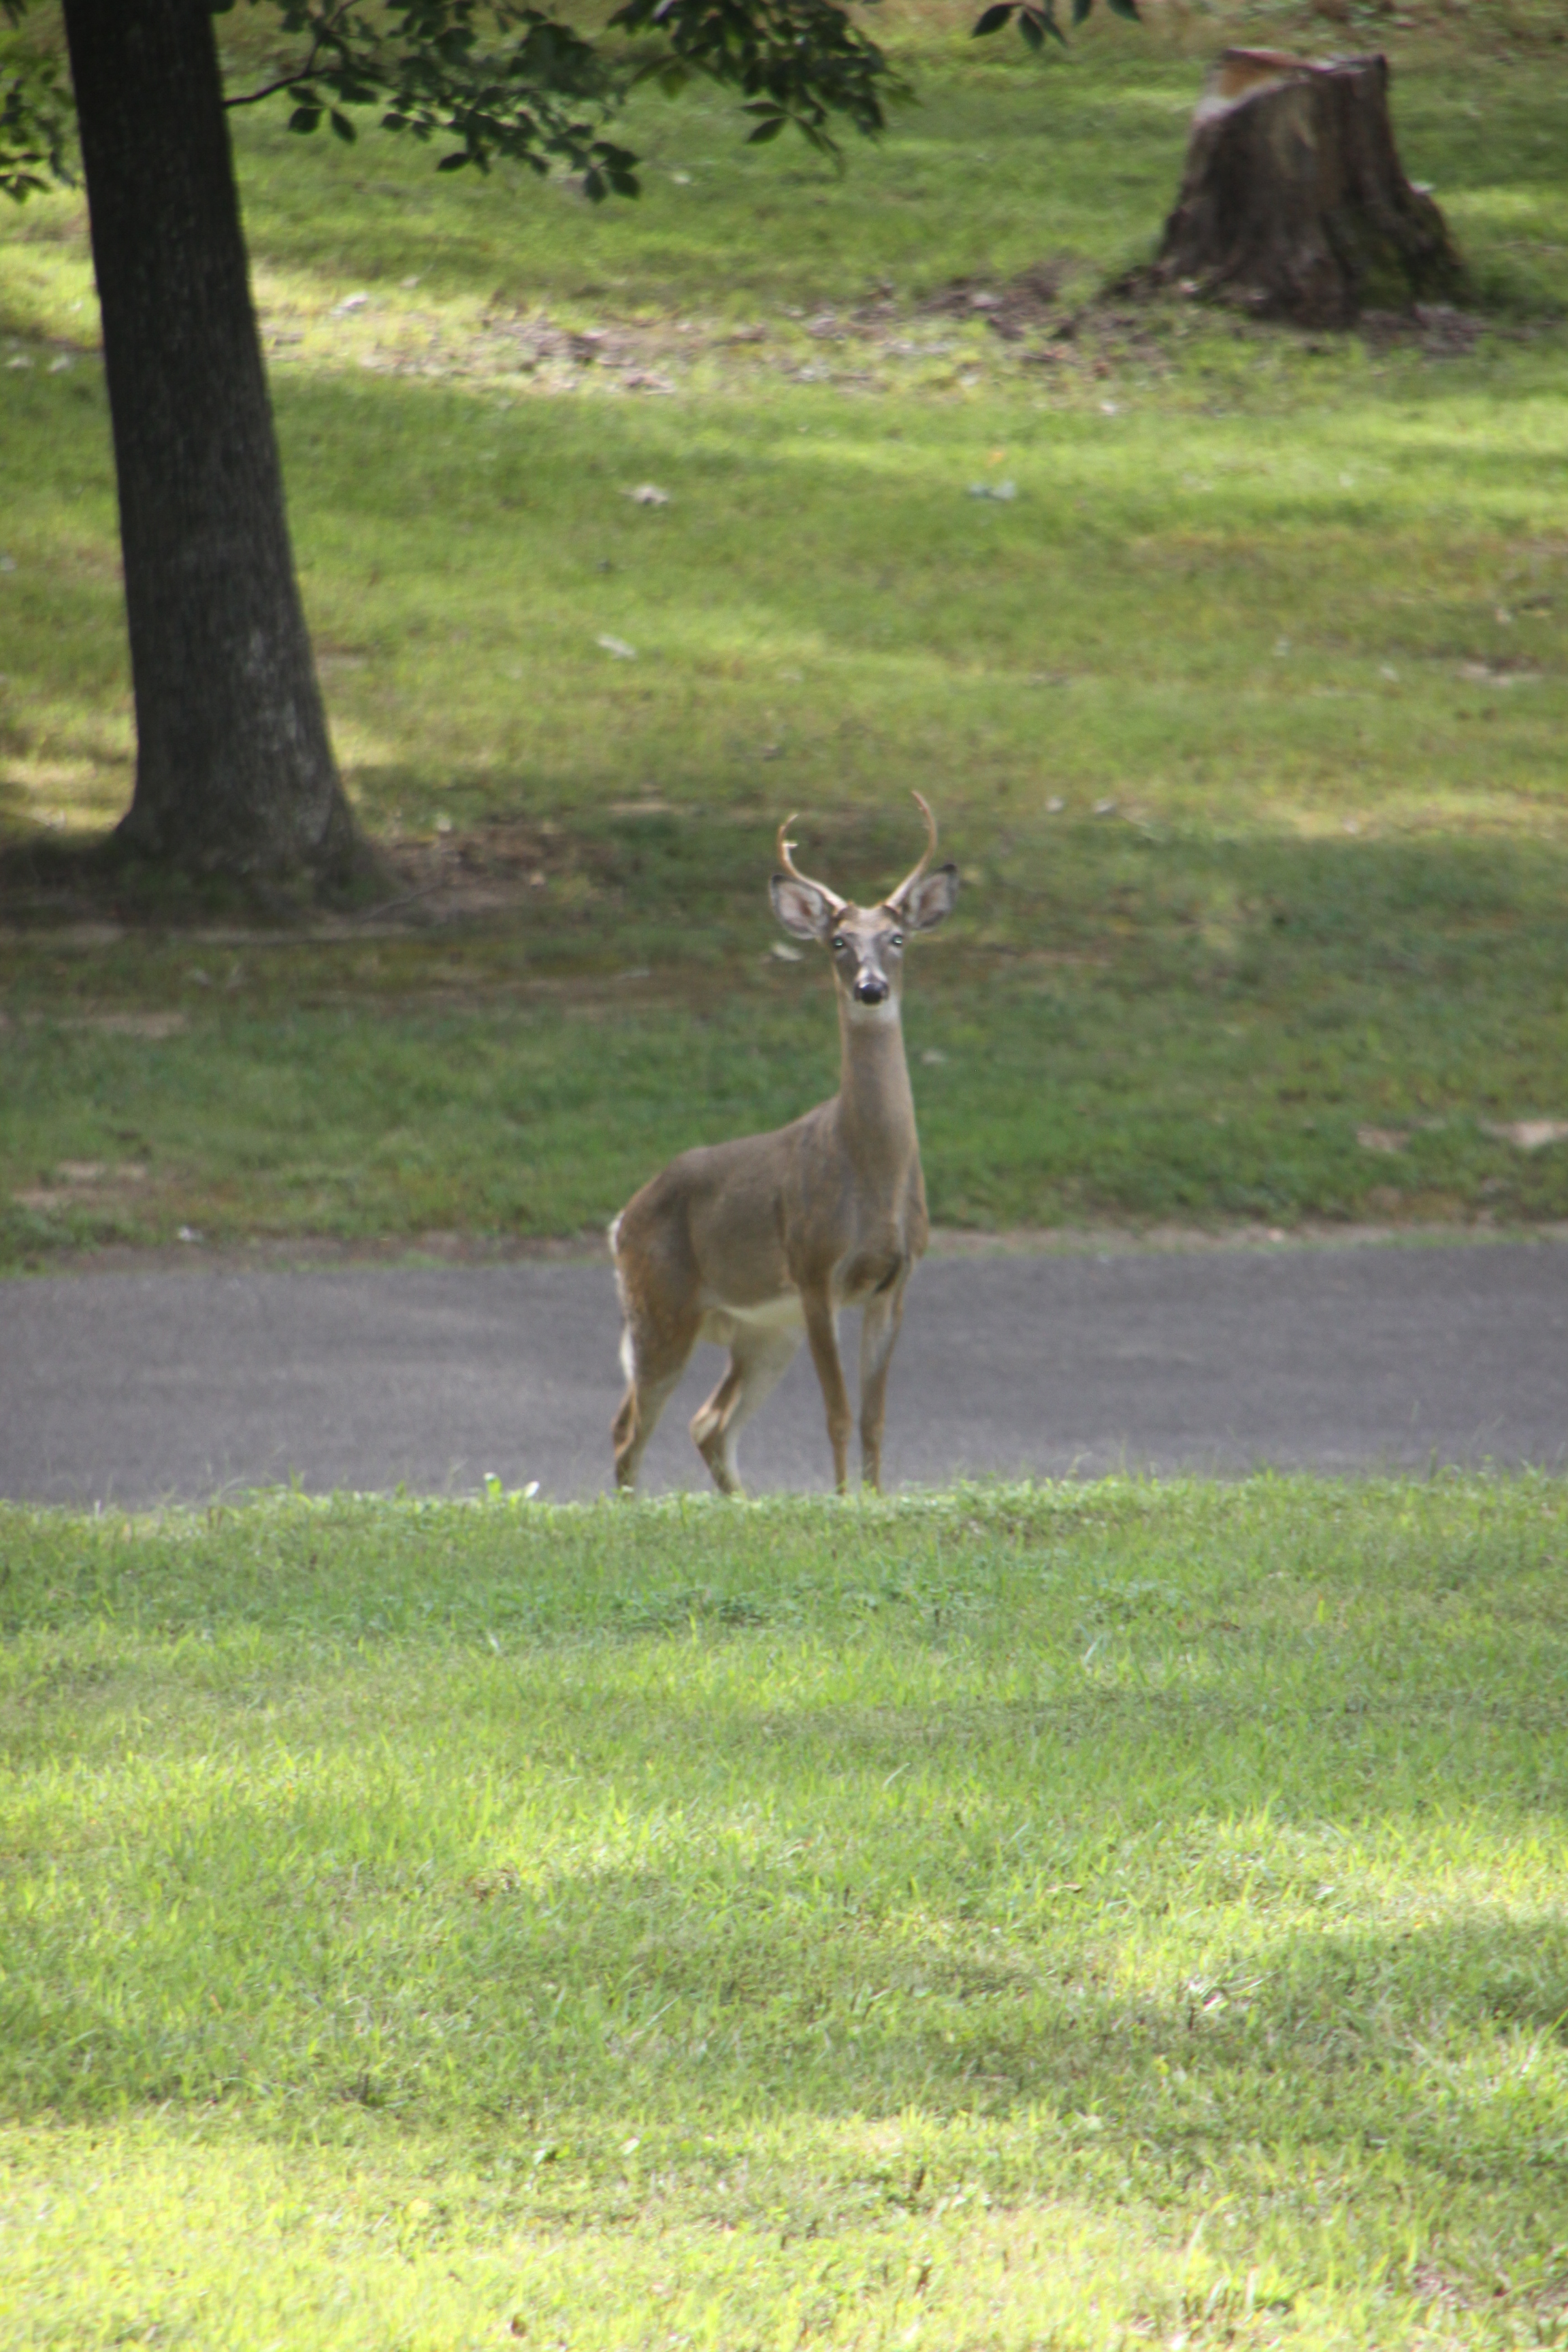 Deer-car collisions increase this time of year.